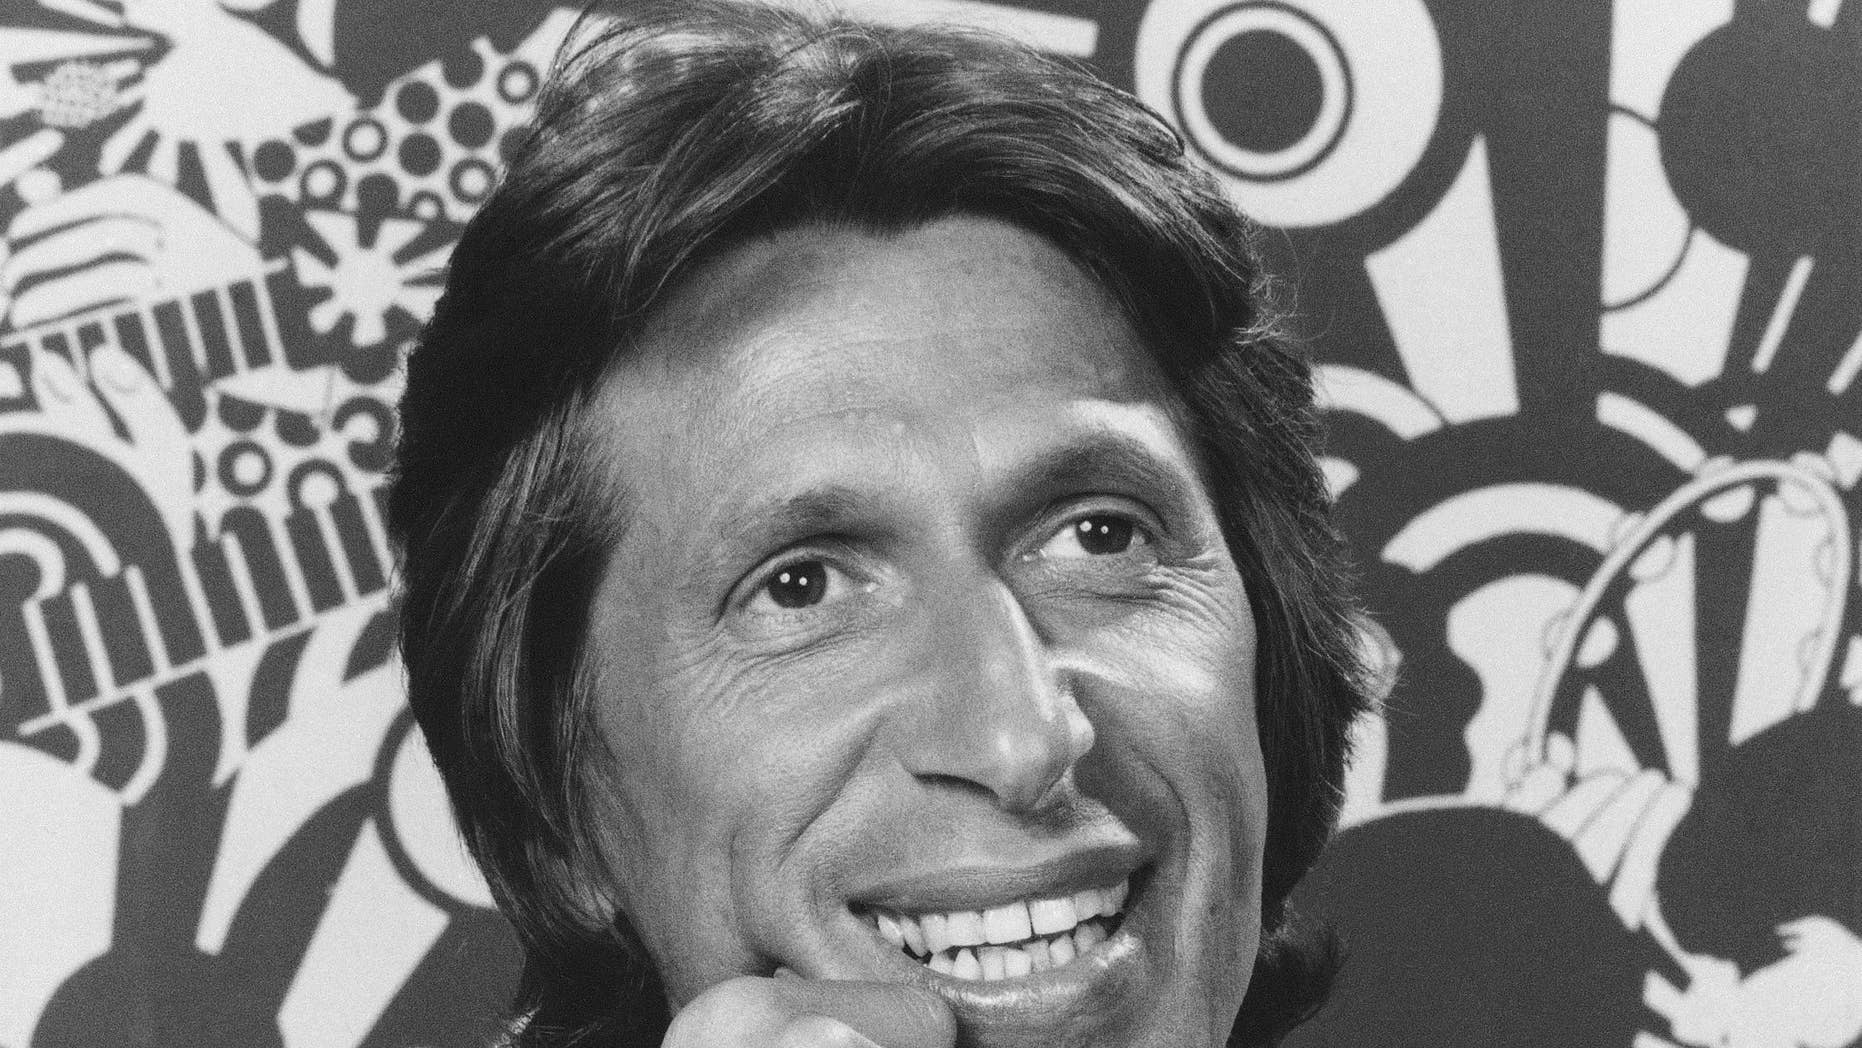 July 13, 1977. Portrait of David Brenner. On Saturday, March 15, 2014, publicist Jeff Abraham announced Brenner has died at the age of 78.